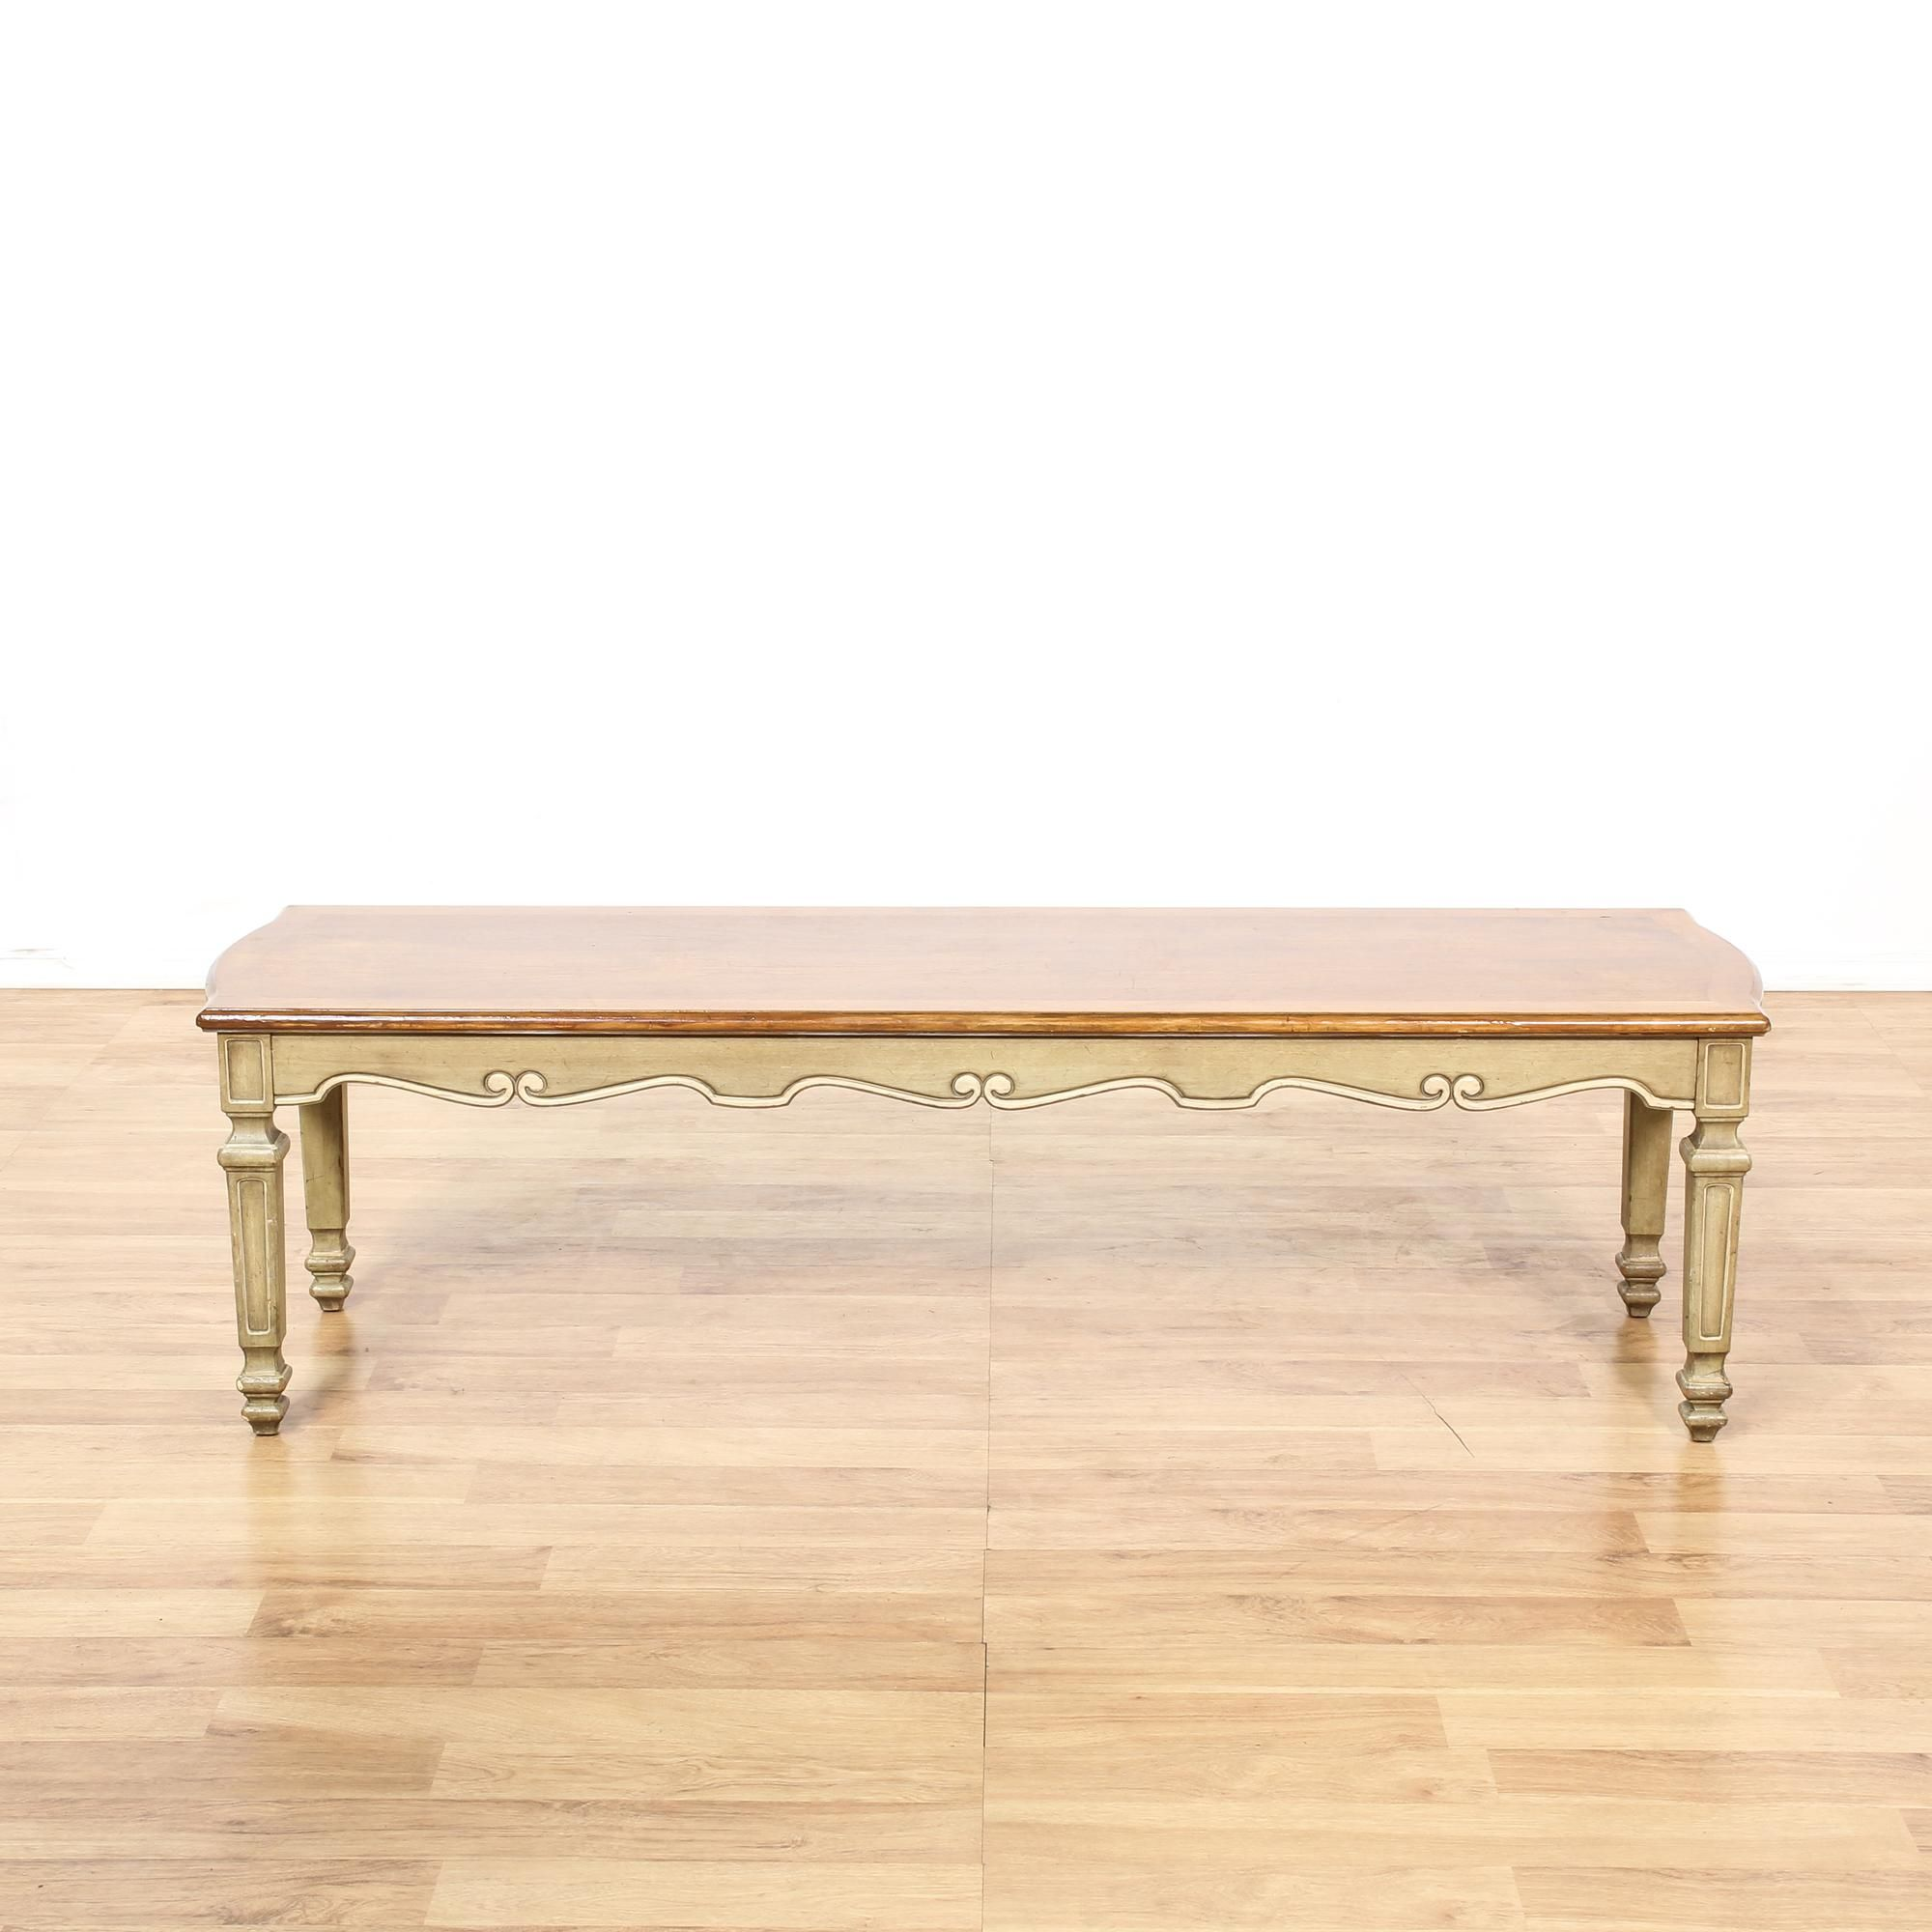 This french provincial coffee table is featured in a solid wood